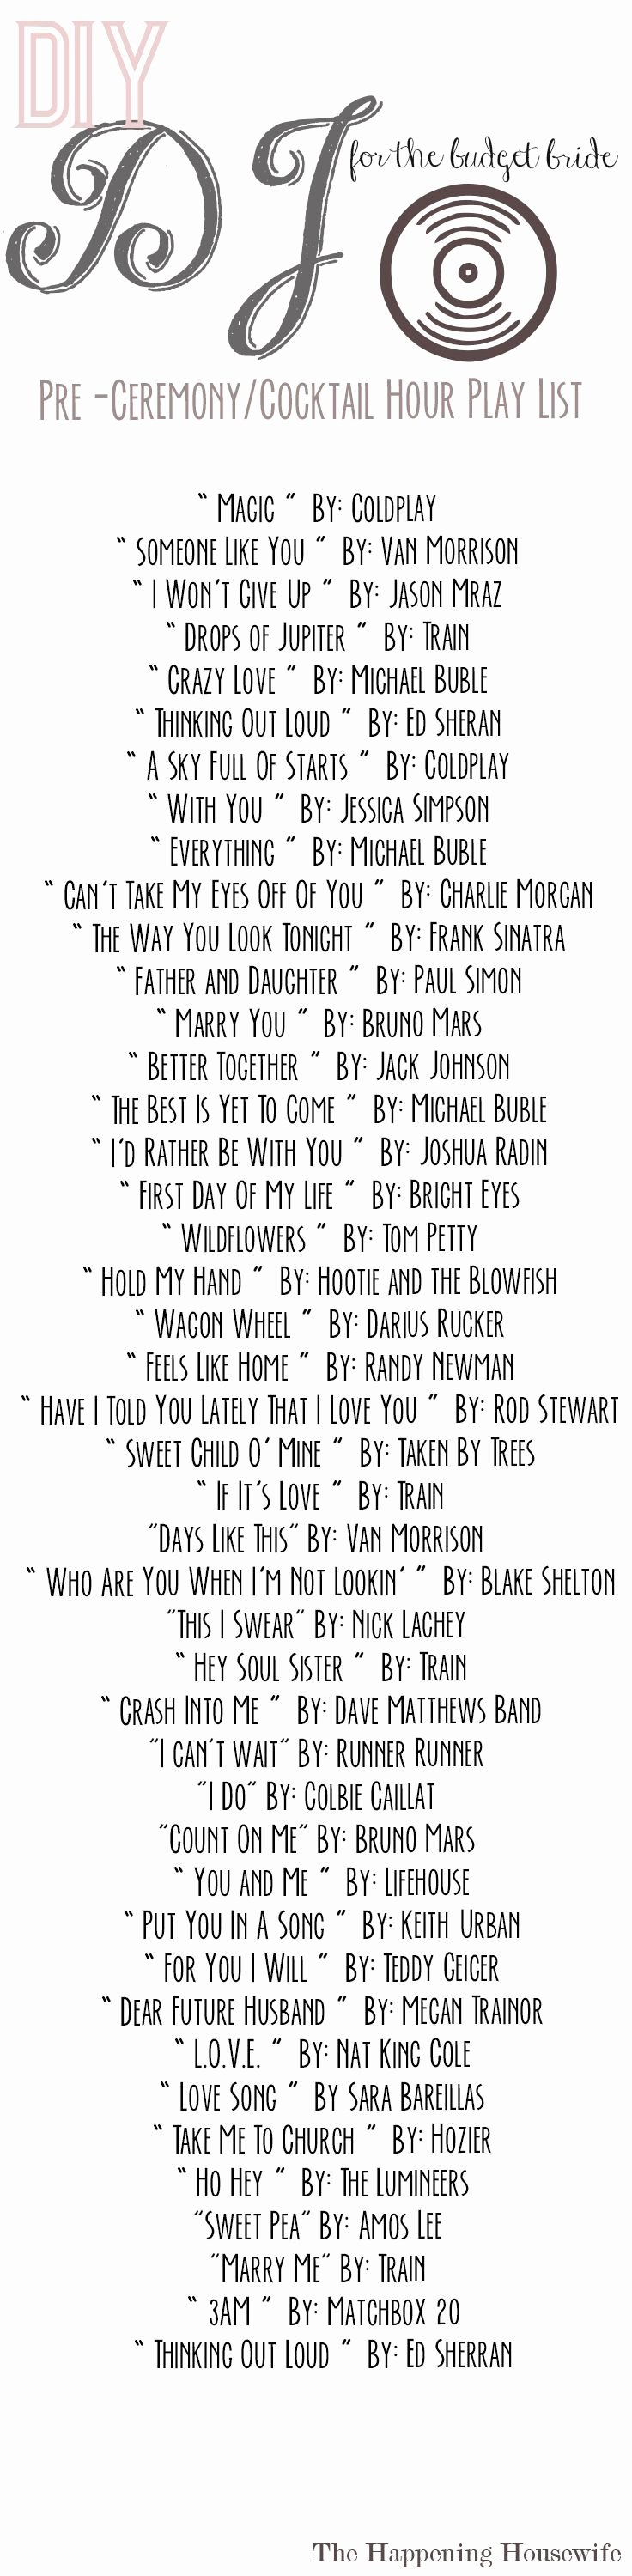 Wedding song List Template New Best 25 Wedding song List Ideas On Pinterest